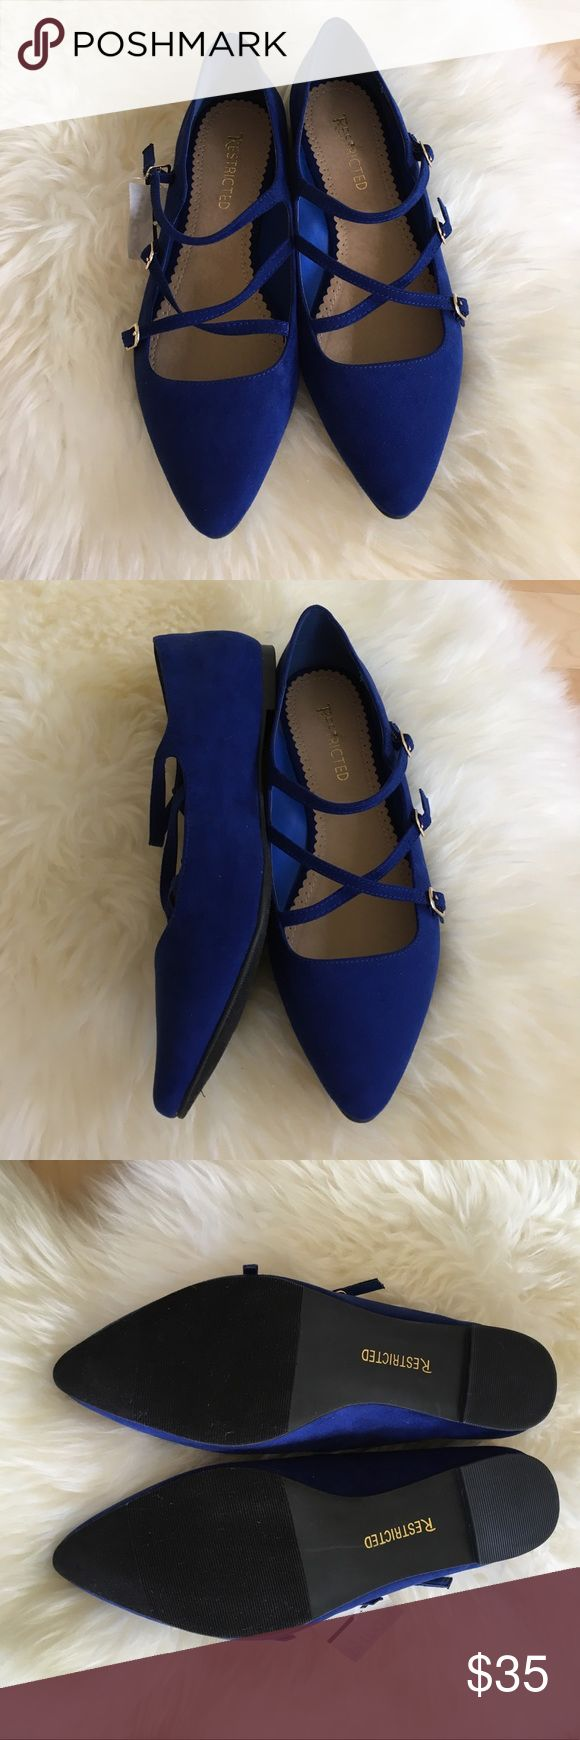 NWT Cobalt Blue Faux Suede Buckle Flats, Sz 9 Brand new cobalt blue faux suede flats with gold buckle detail. Super cute and comfortable. Never worn- new with tags! Last pic shows the same shoes in Taupe. Item for sale is COBALT. Restricted Shoes Flats & Loafers